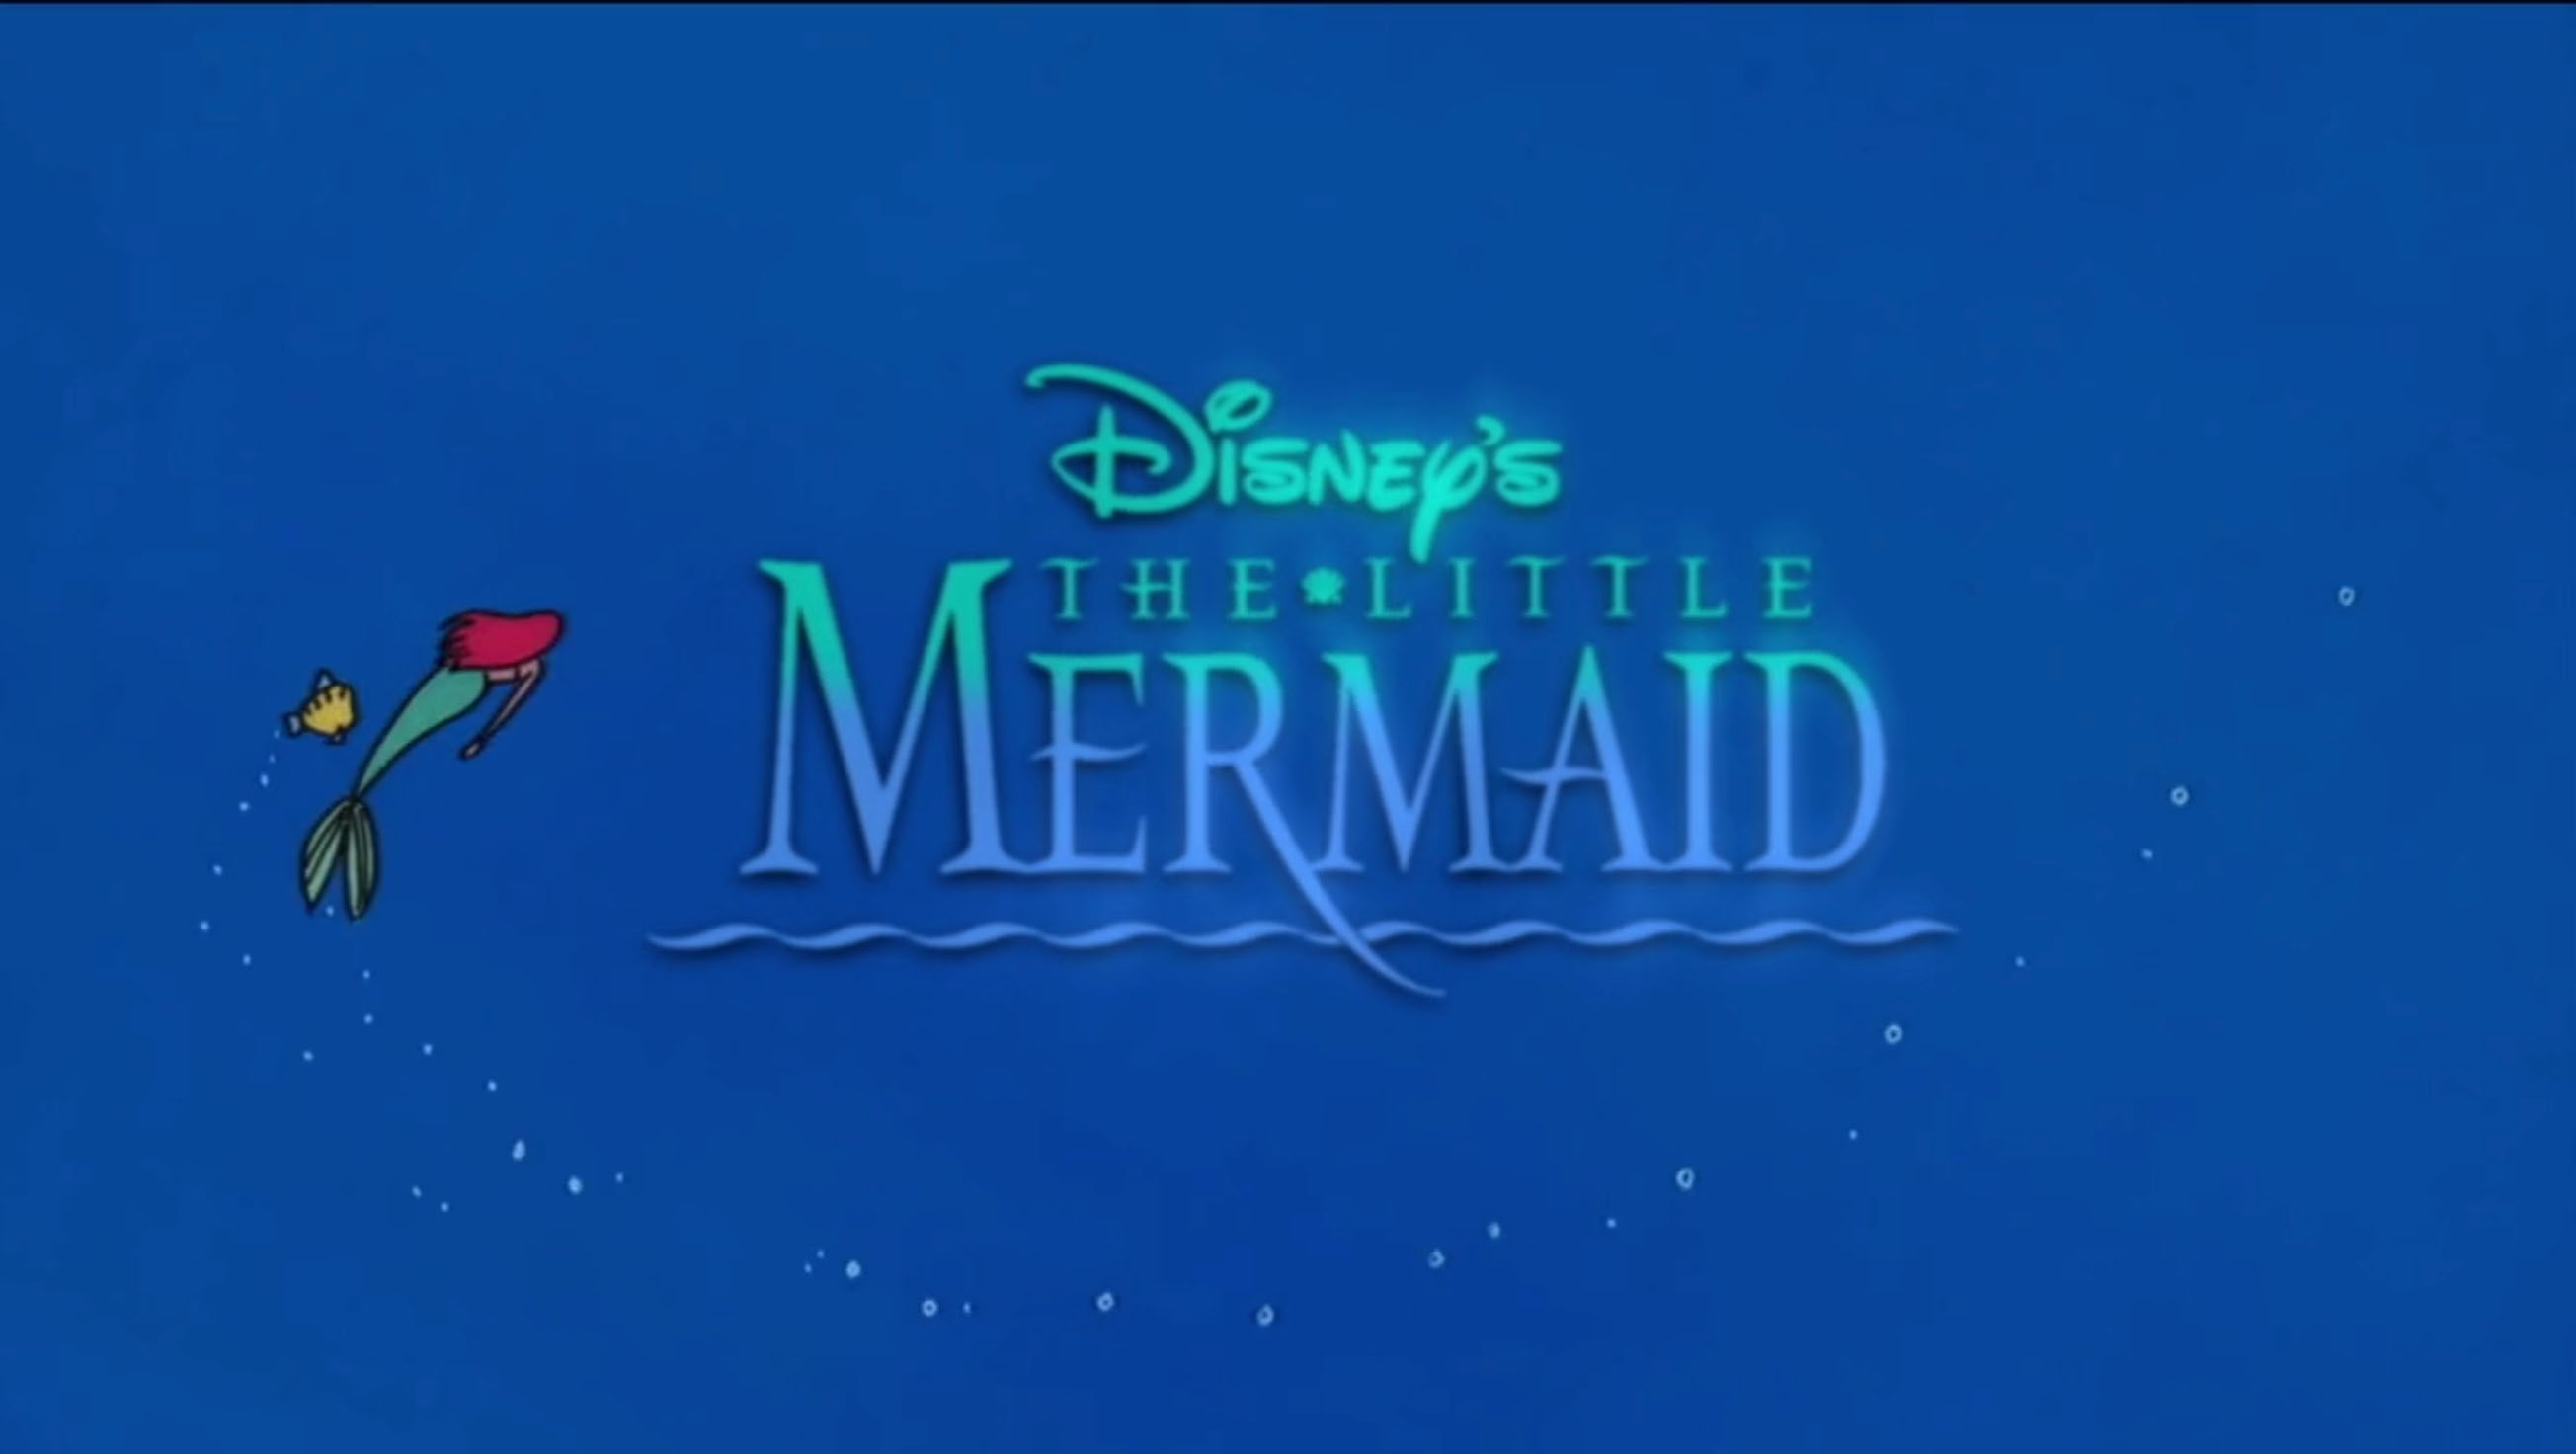 File:The little mermaid tv show title card.jpg